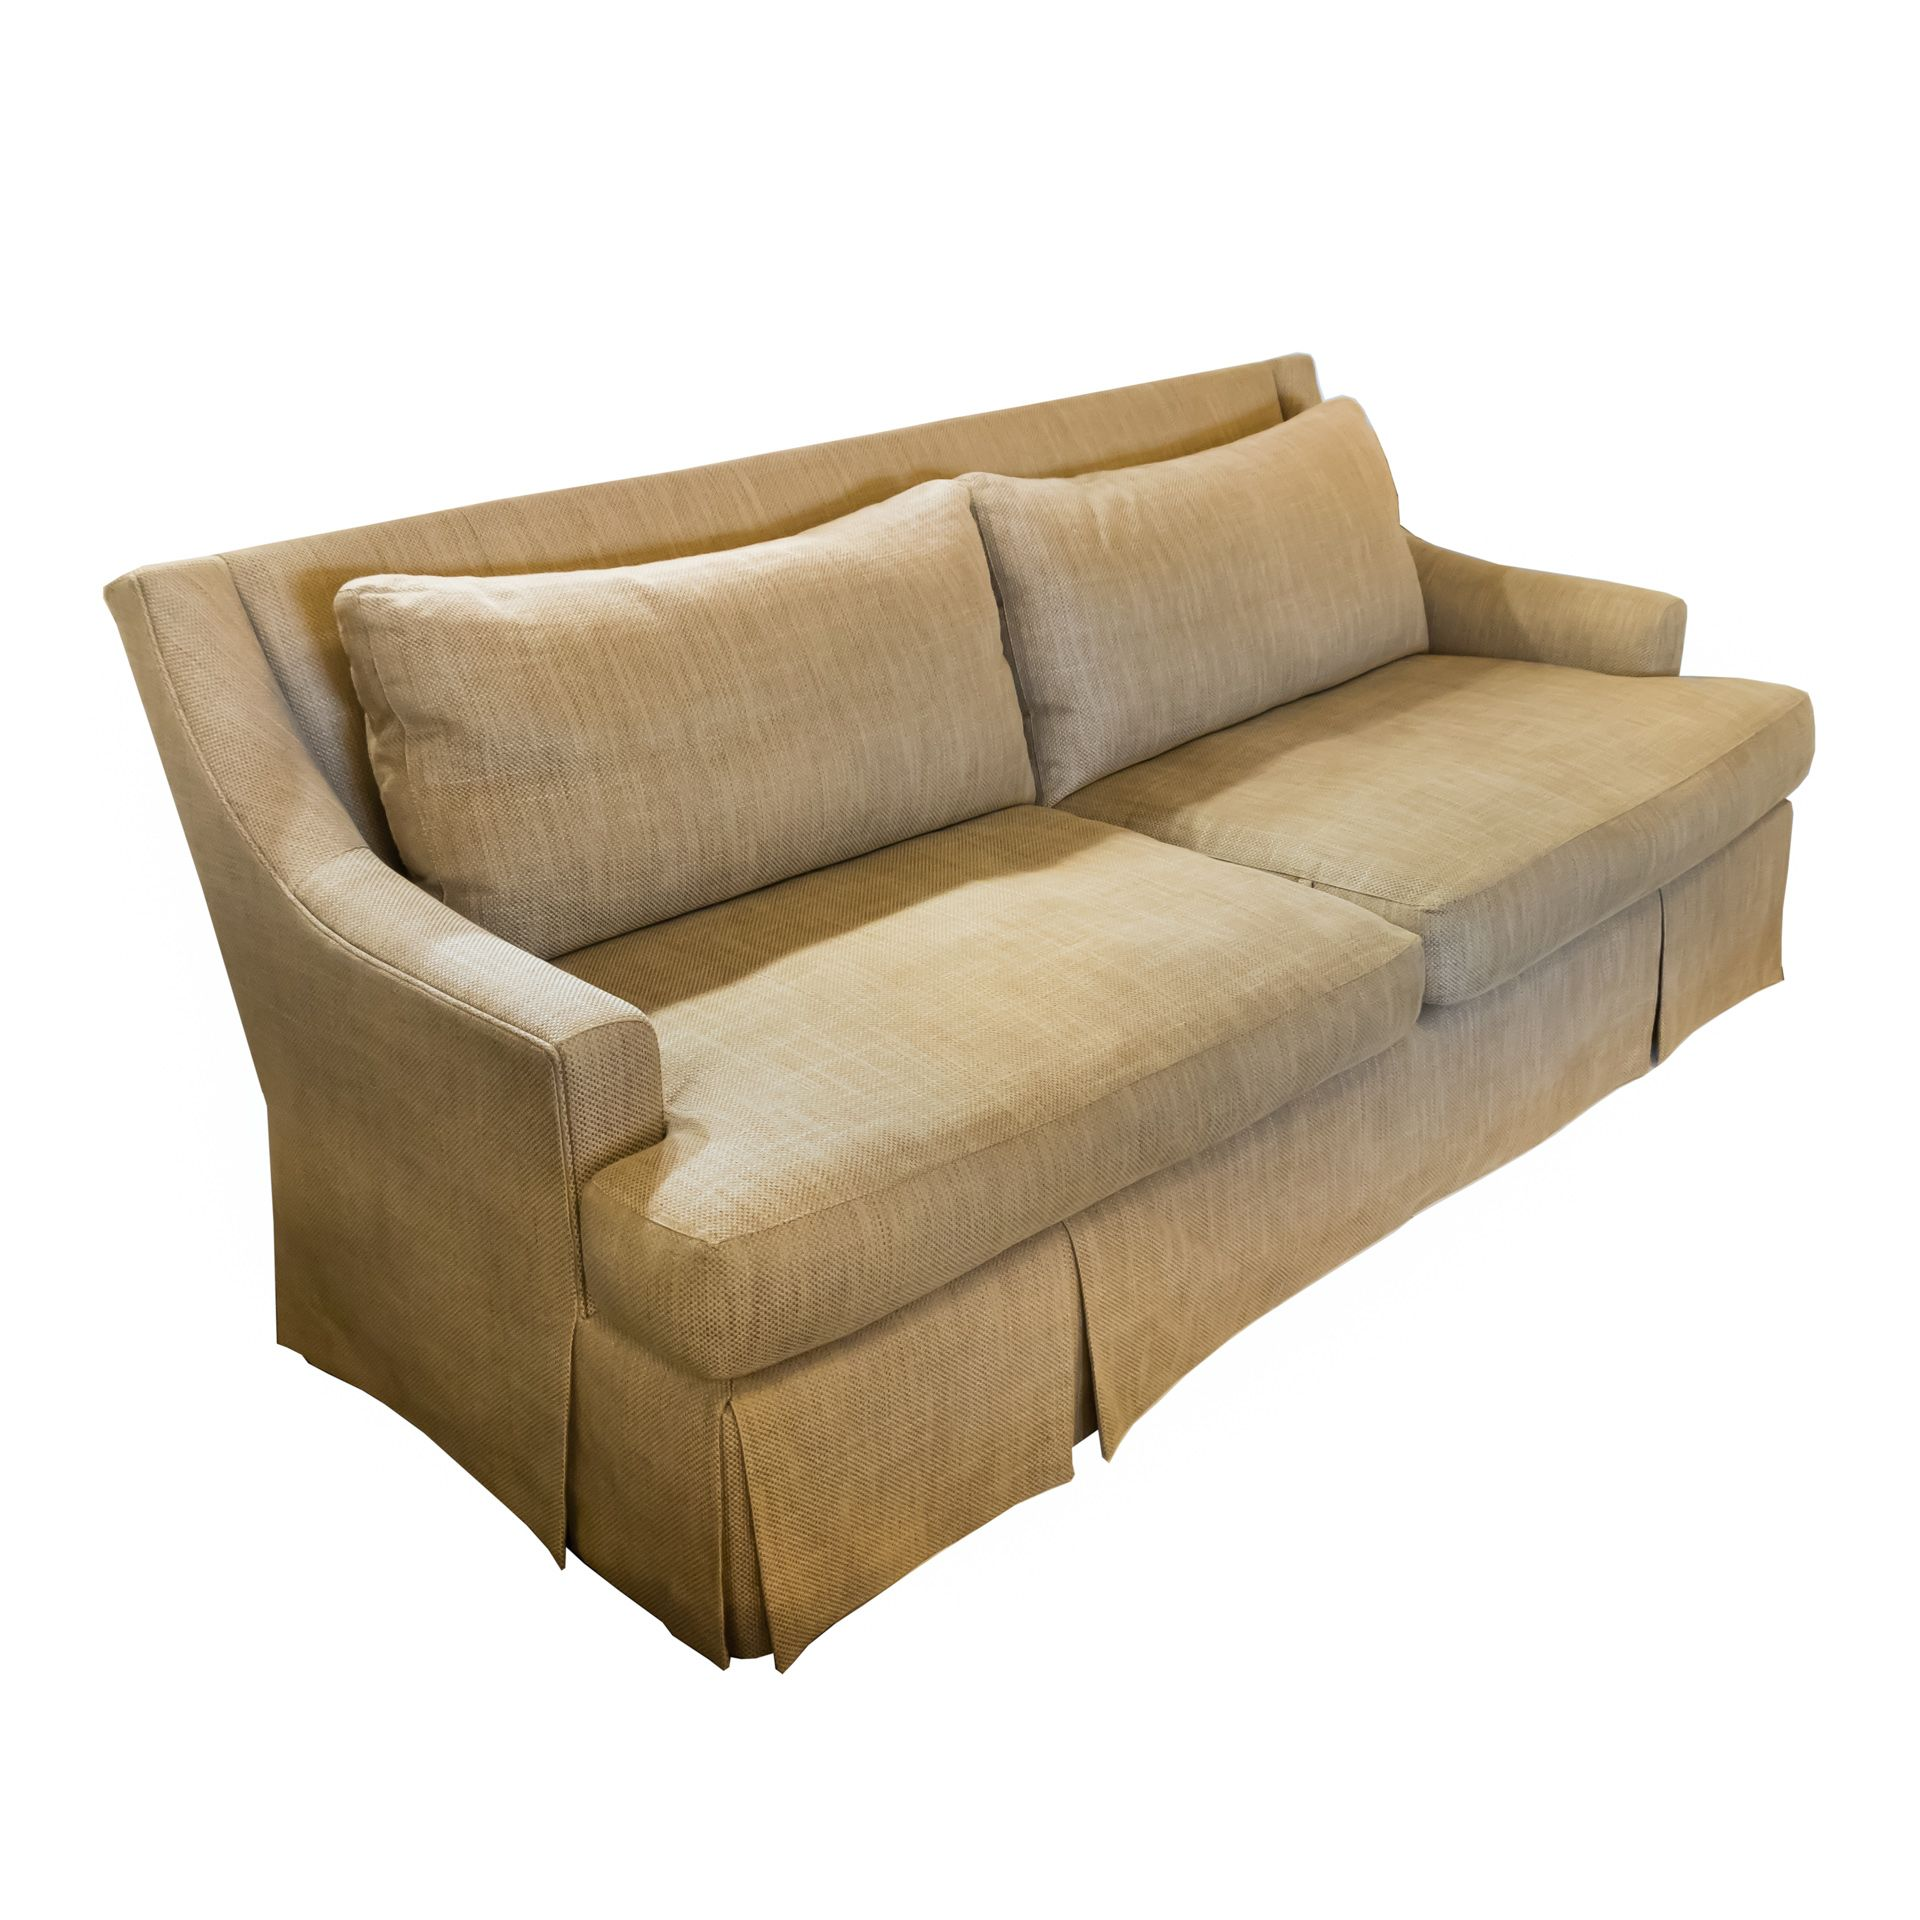 Elegant Yet Plush This Gold Linen Sofa By Baker Furniture Has Sloping Arms A